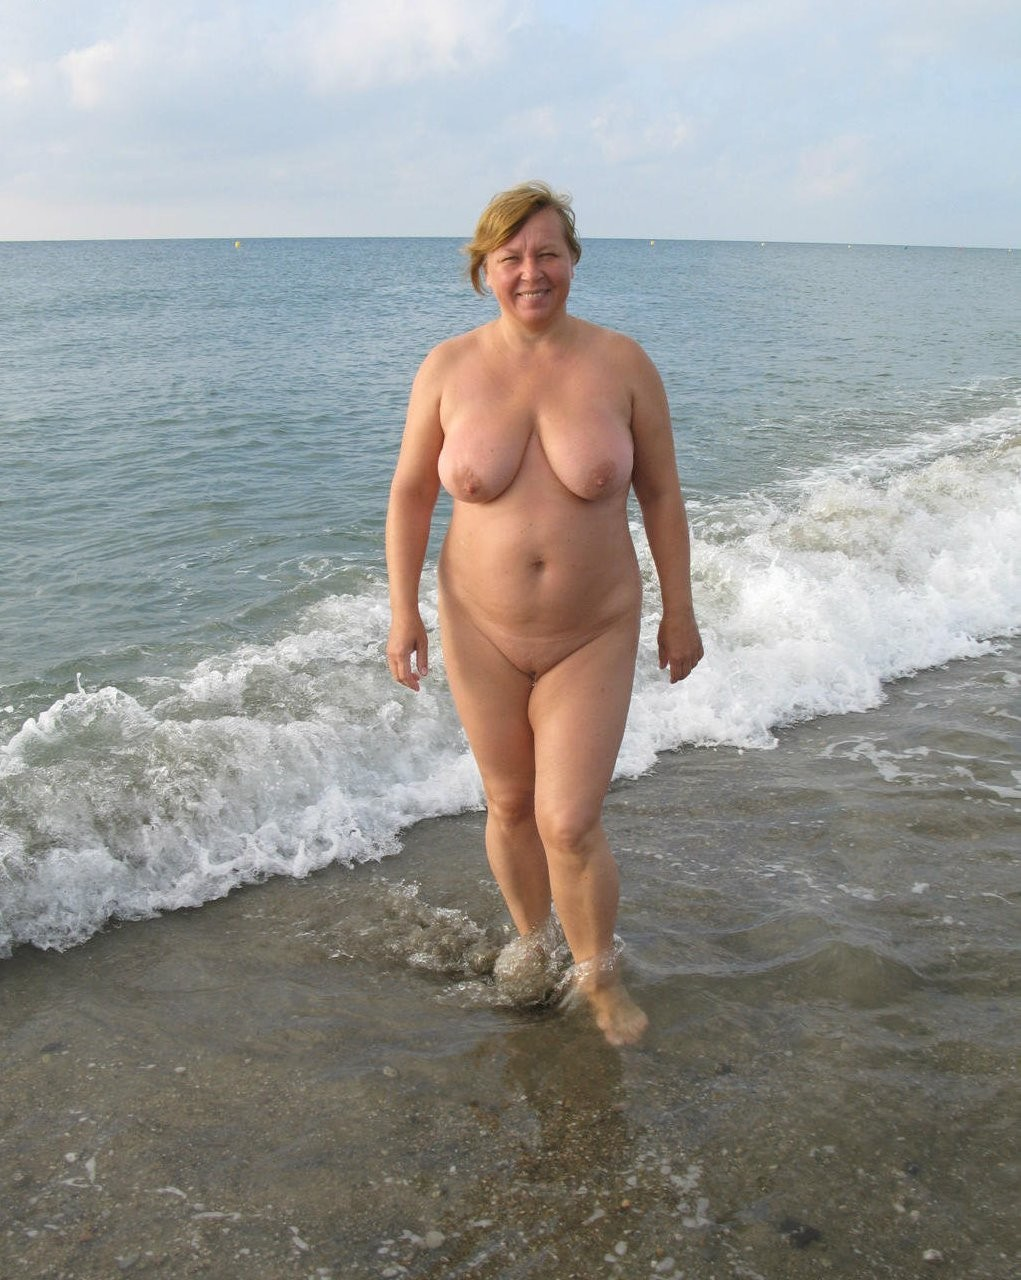 Nude resorts and travel